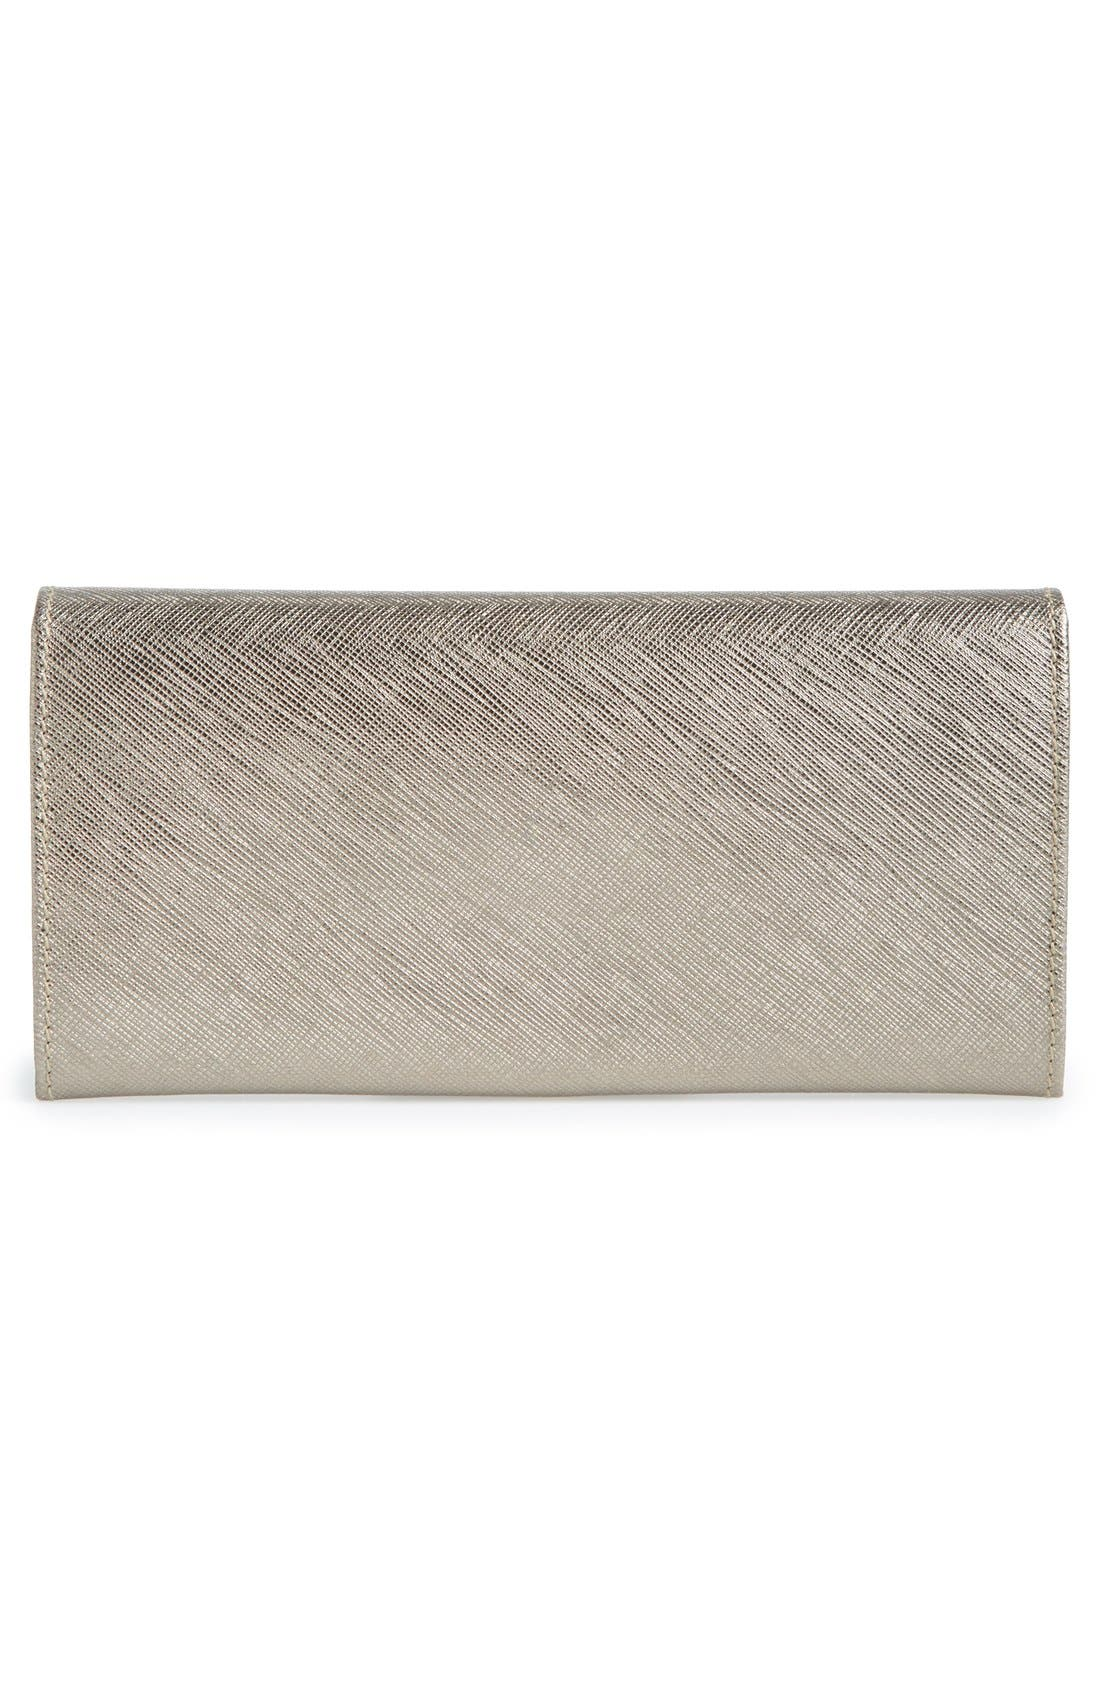 Alternate Image 3  - Salvatore Ferragamo 'Icona Bar' Saffiano Calfskin Wallet